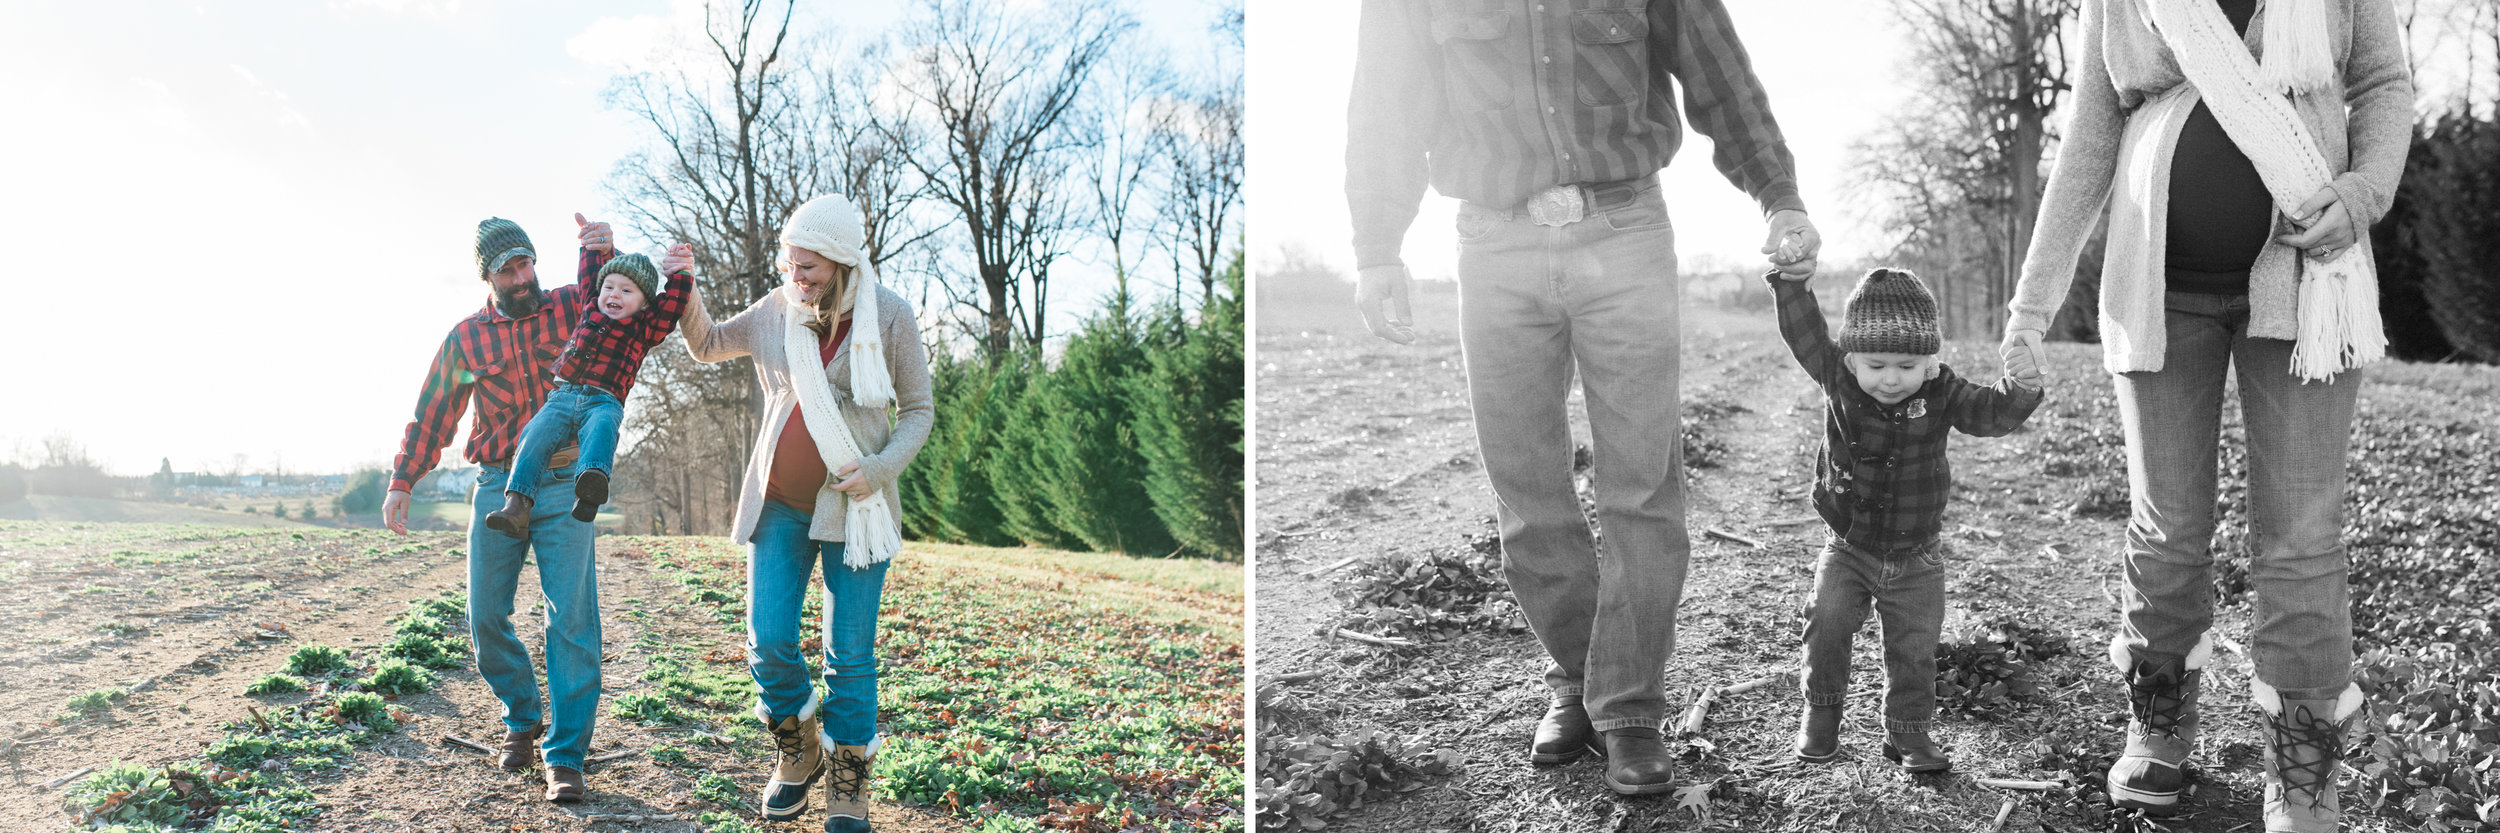 Harford-county-maryland-photographer-lifestyle-family-maternity-engagement-photos-by-breanna-kuhlmann-14.jpg